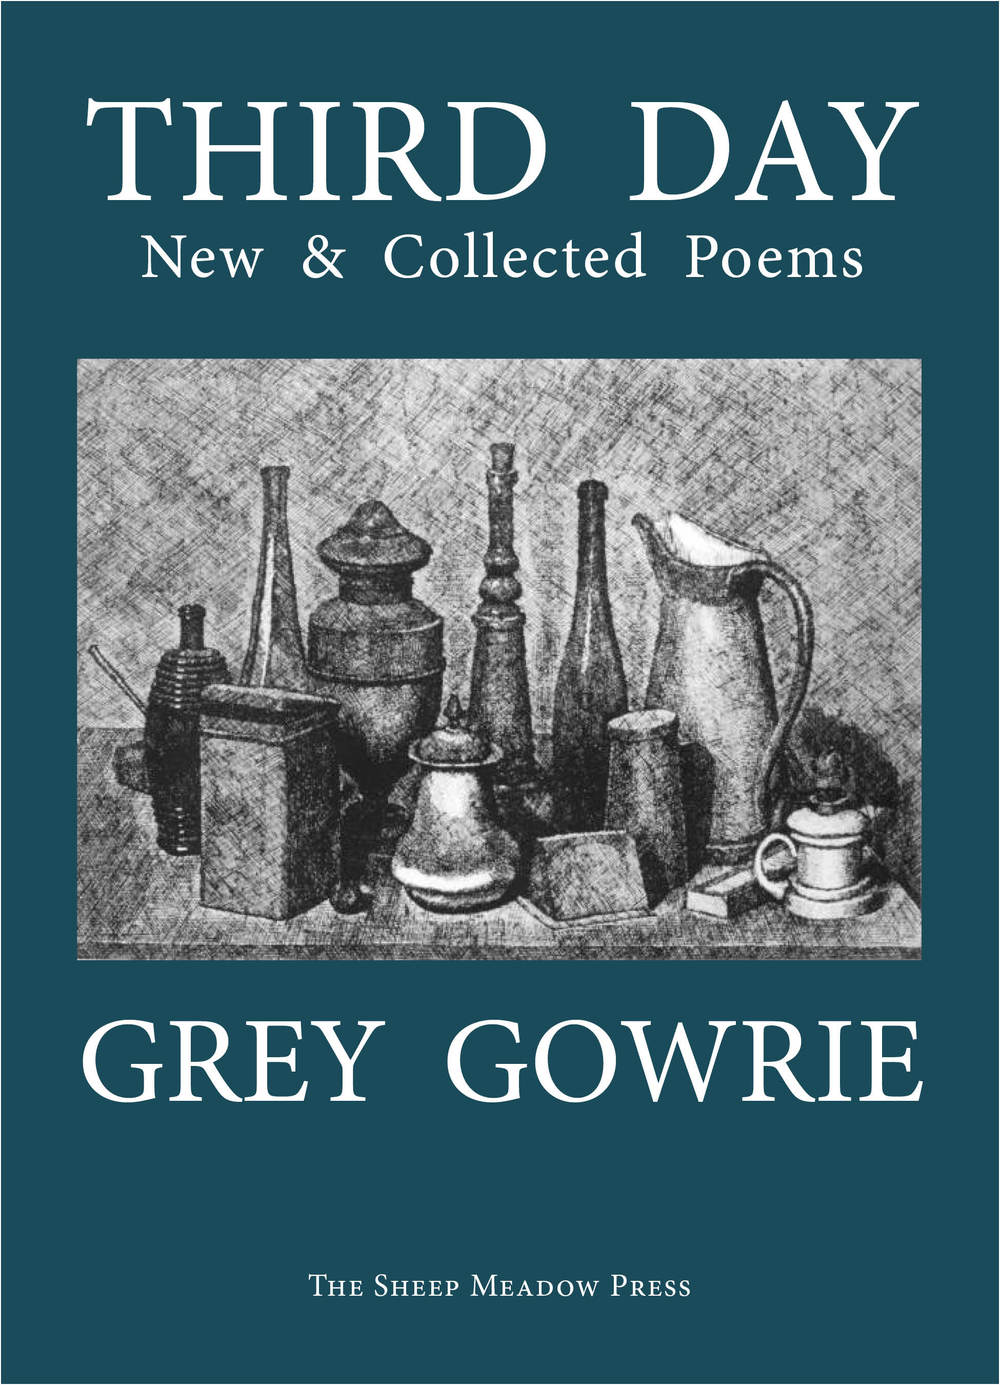 Gowrie_Front Cover_8.14.2013.jpg